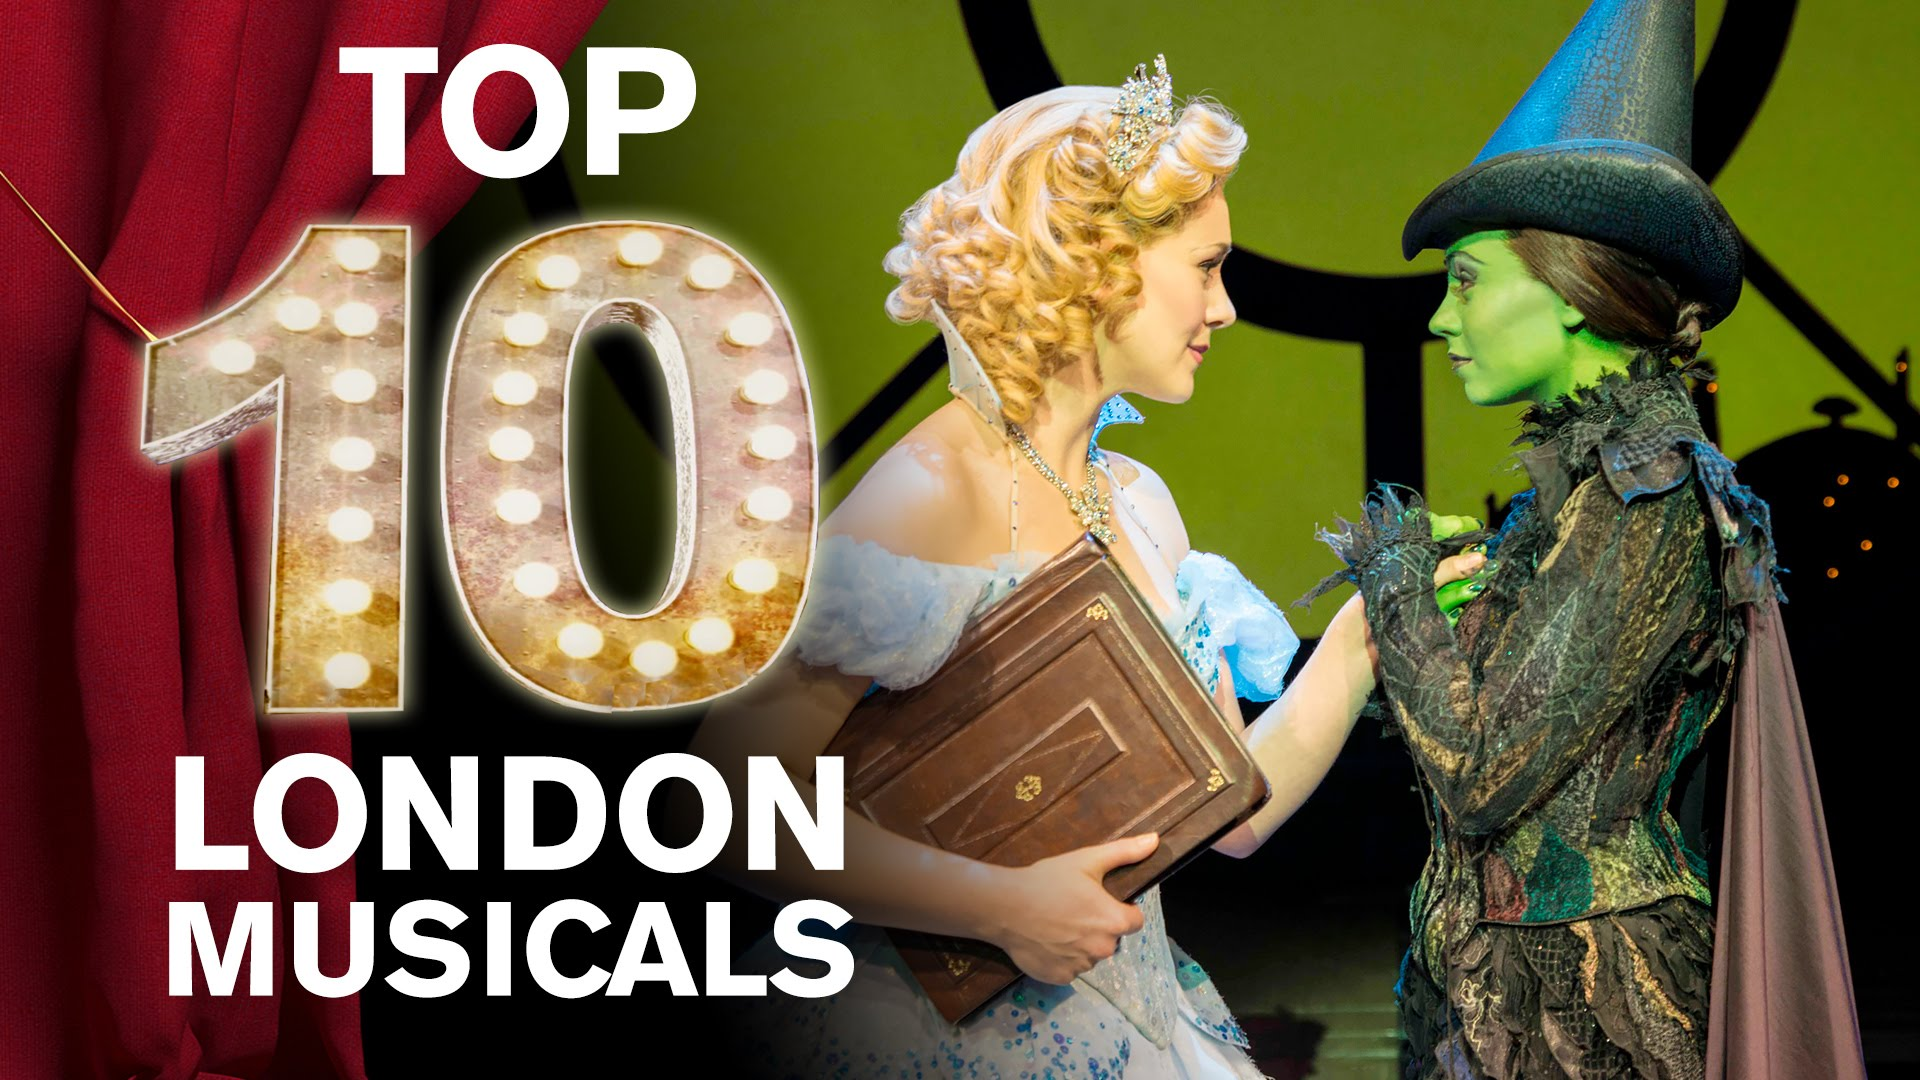 Video: Top 10 London Musicals To See On Your Next Visit